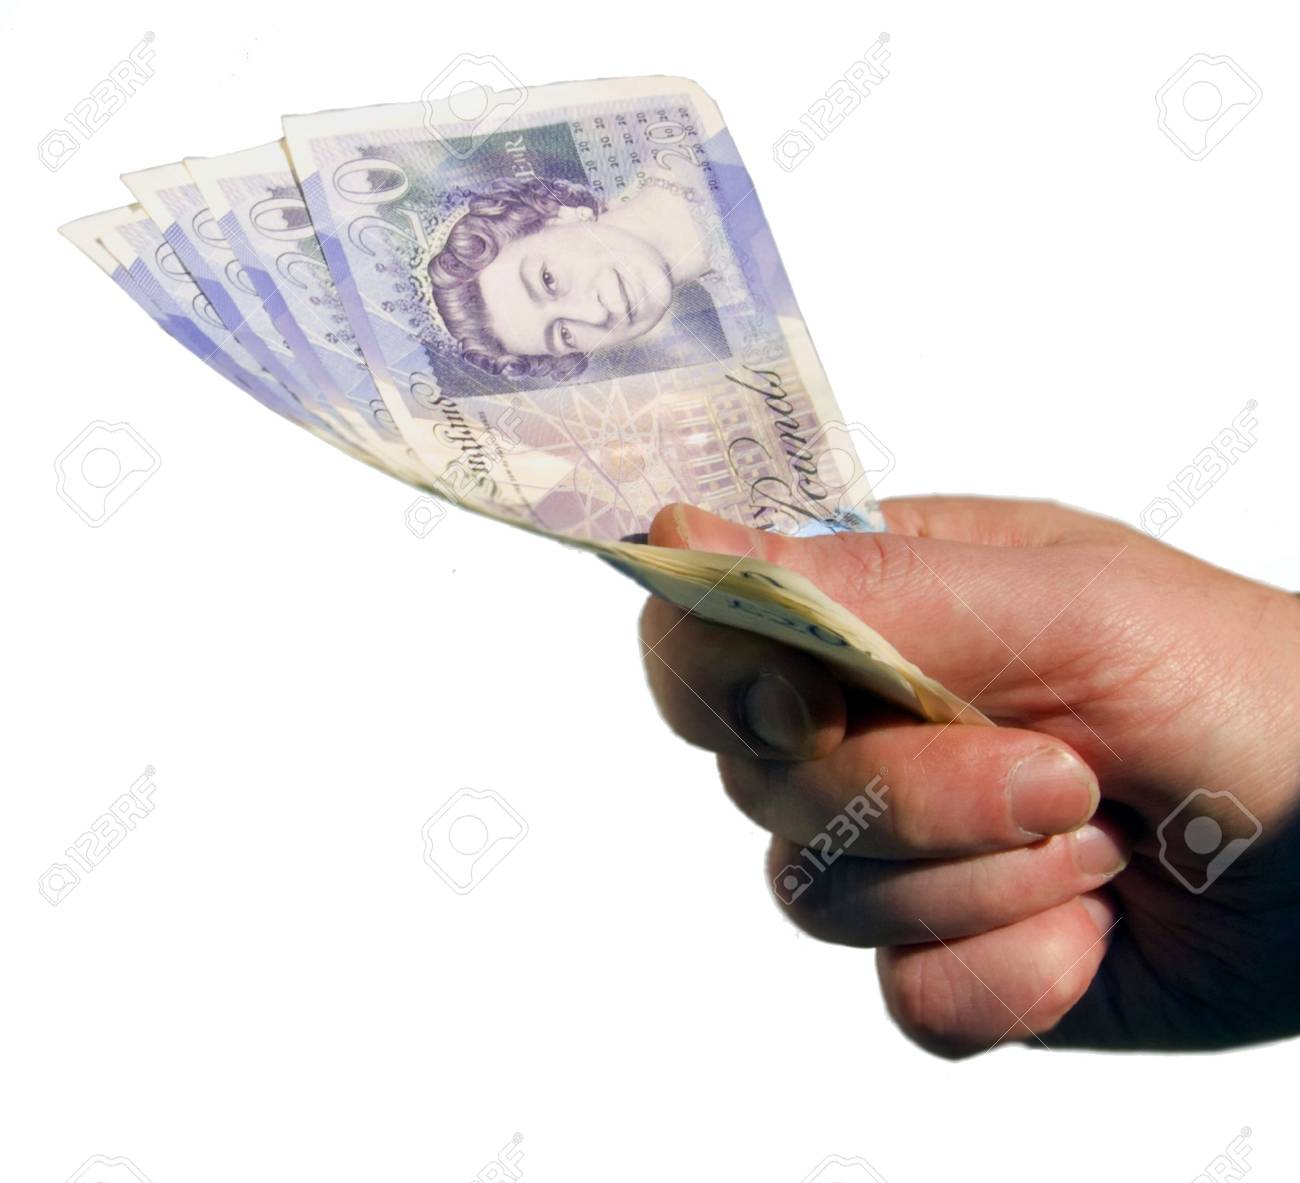 Isolated hand holding bank notes Stock Photo - 2506872